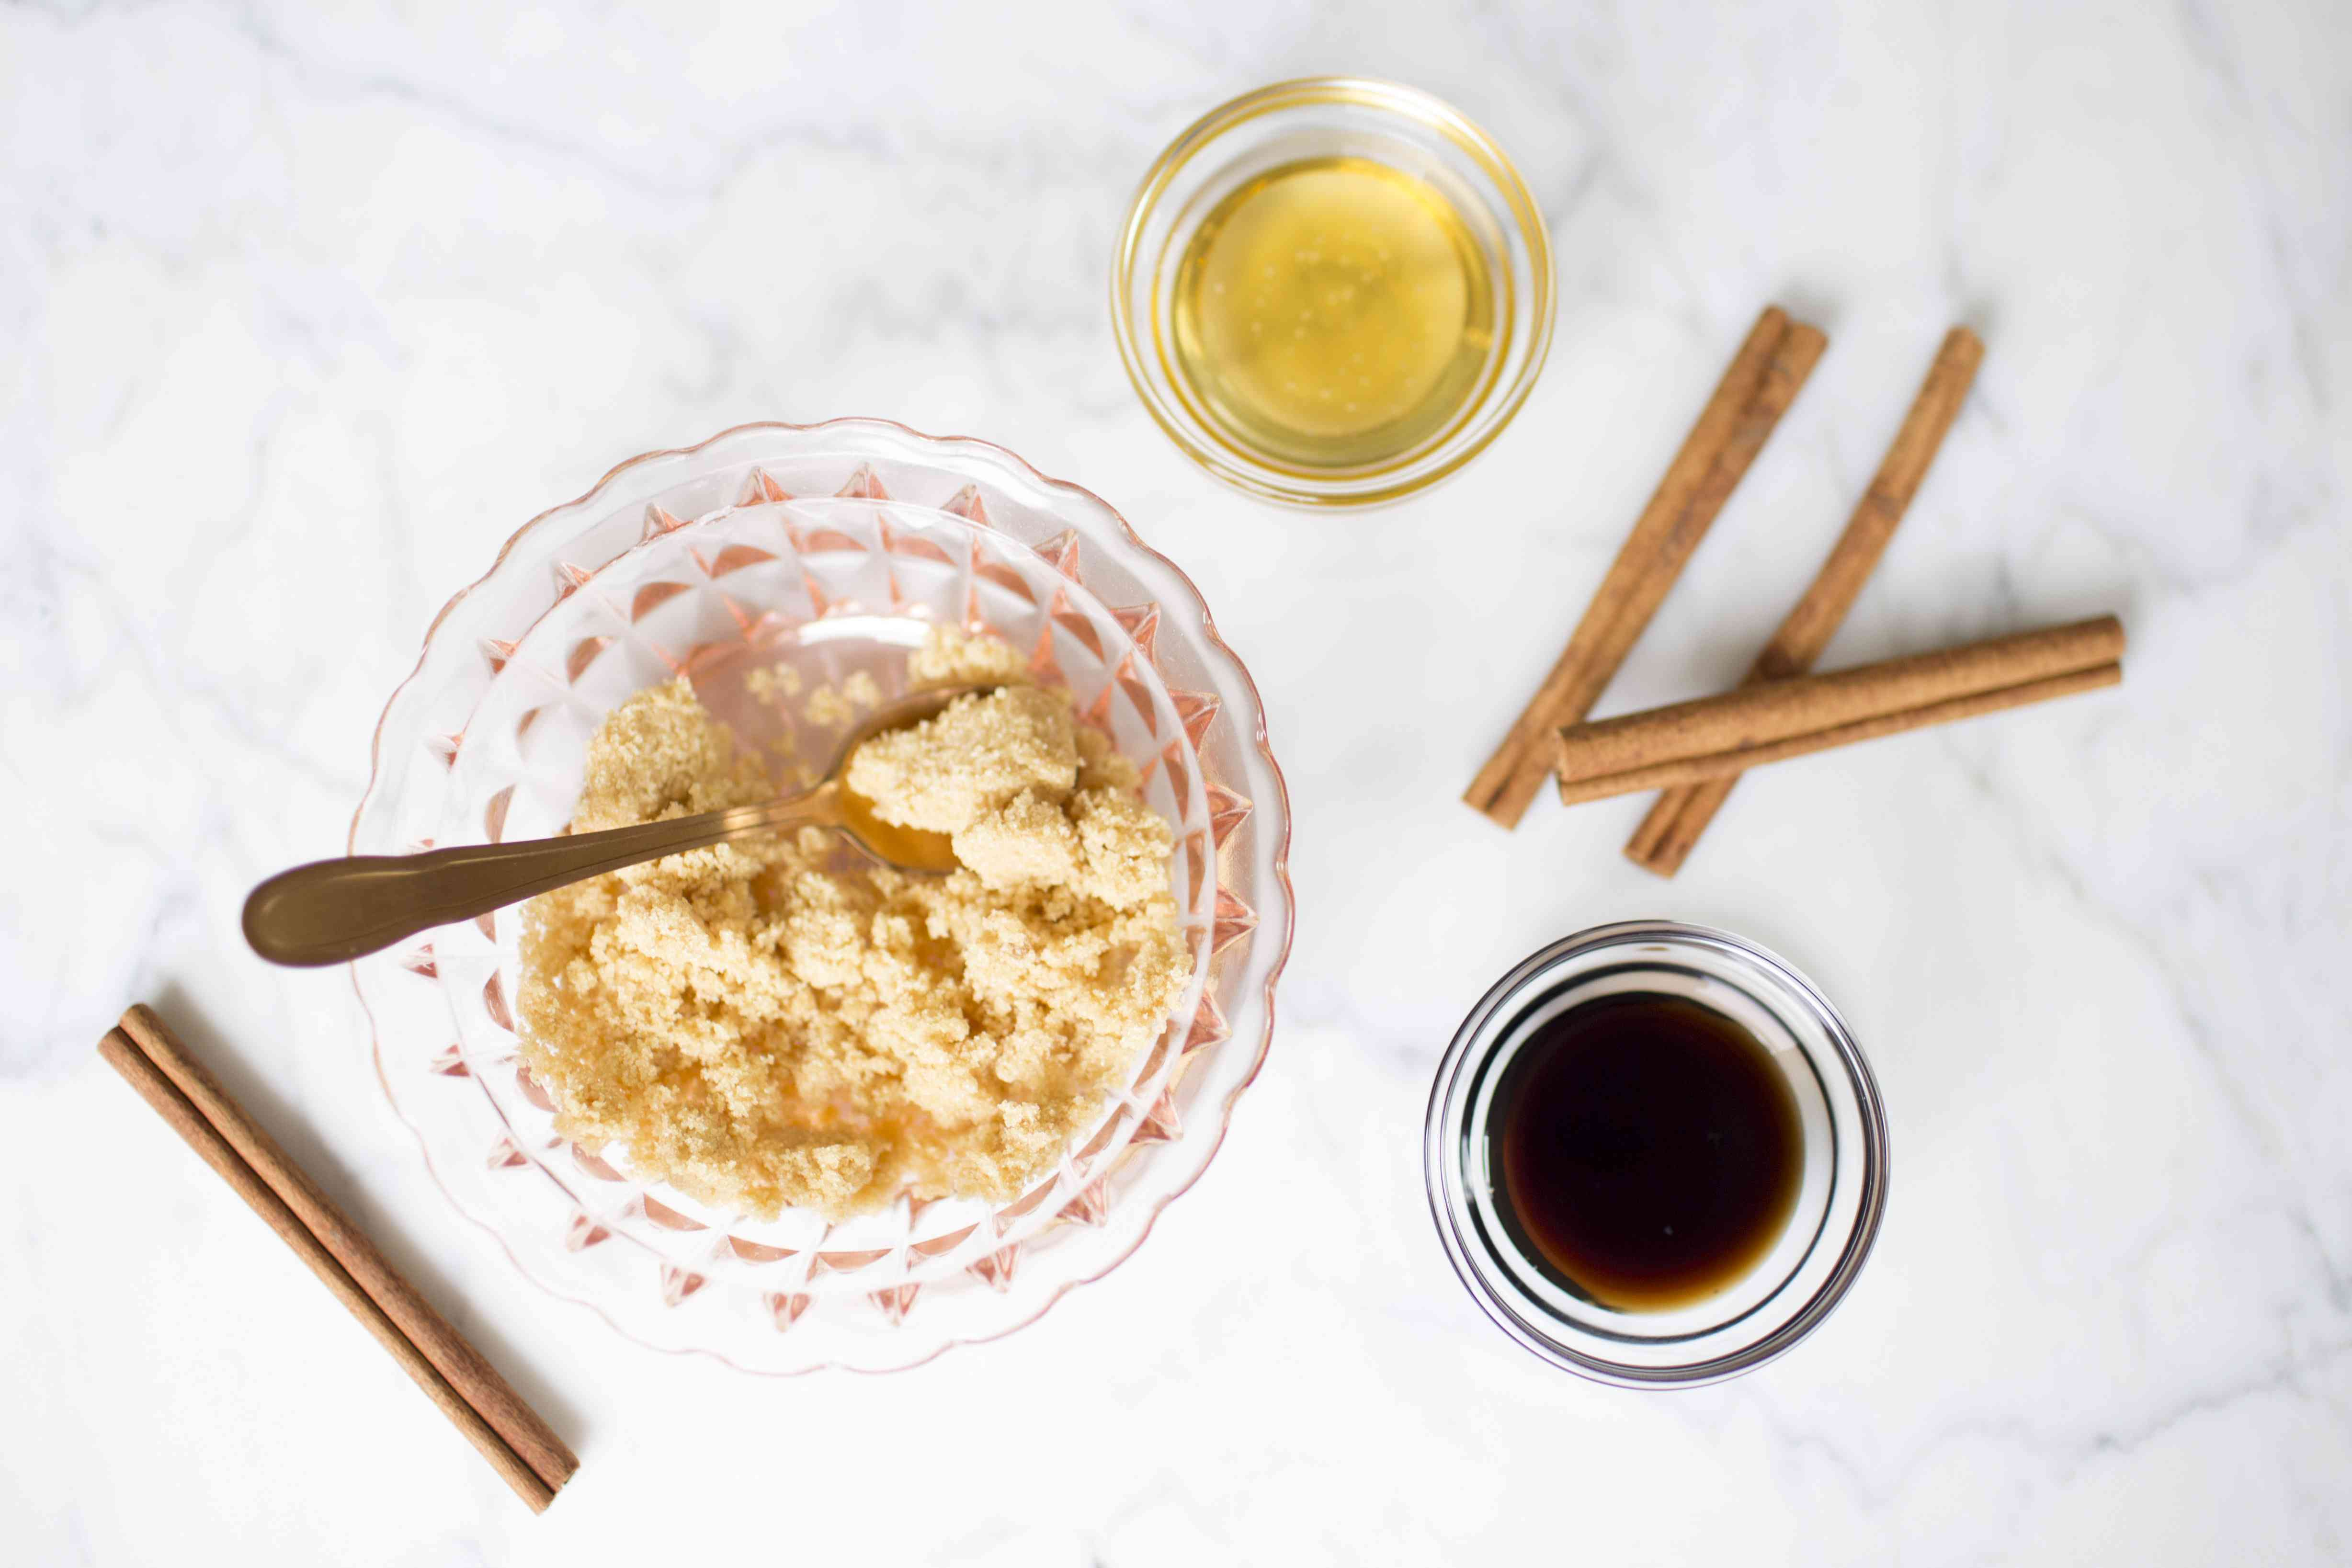 Ingredients for a DIY face scrub